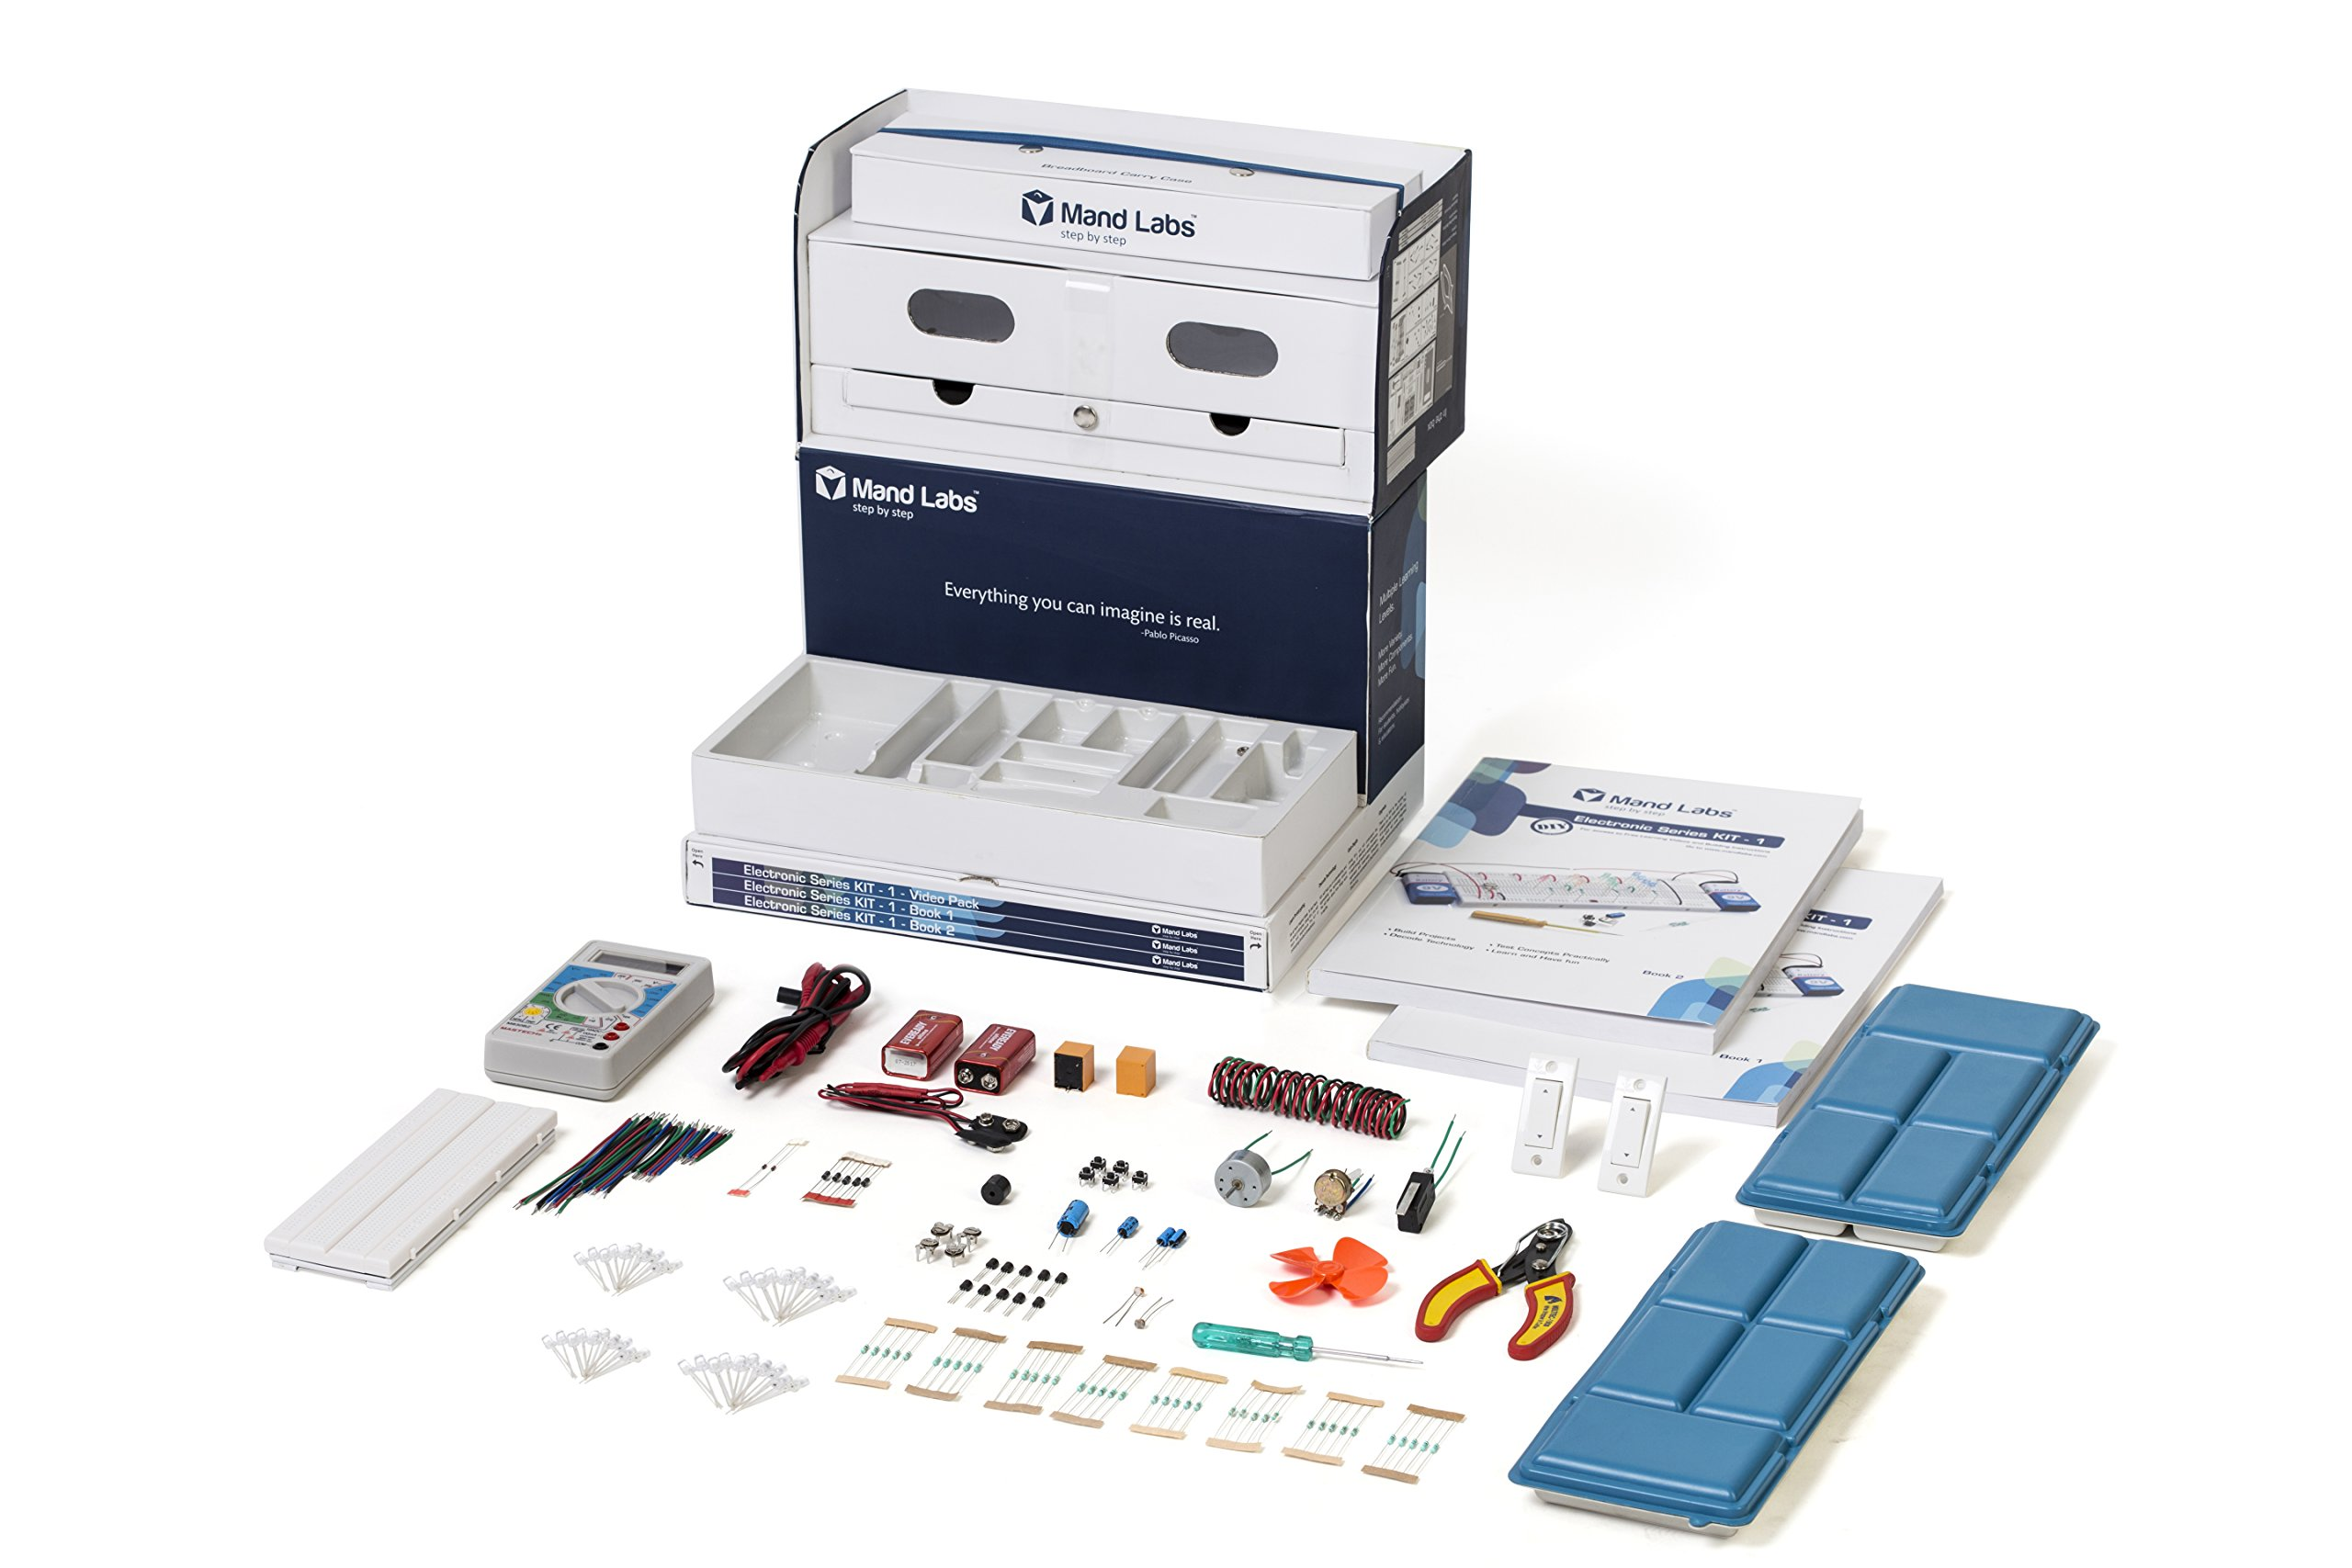 Mand Labs KIT-1 Standard Edition: The Coolest DIY Kit for Fun Learning in Electronics | $40 Off Available | After discount-$110 | |The Best STEM Gifts-2017 by the Maker Mom | i-Design Award-15 |